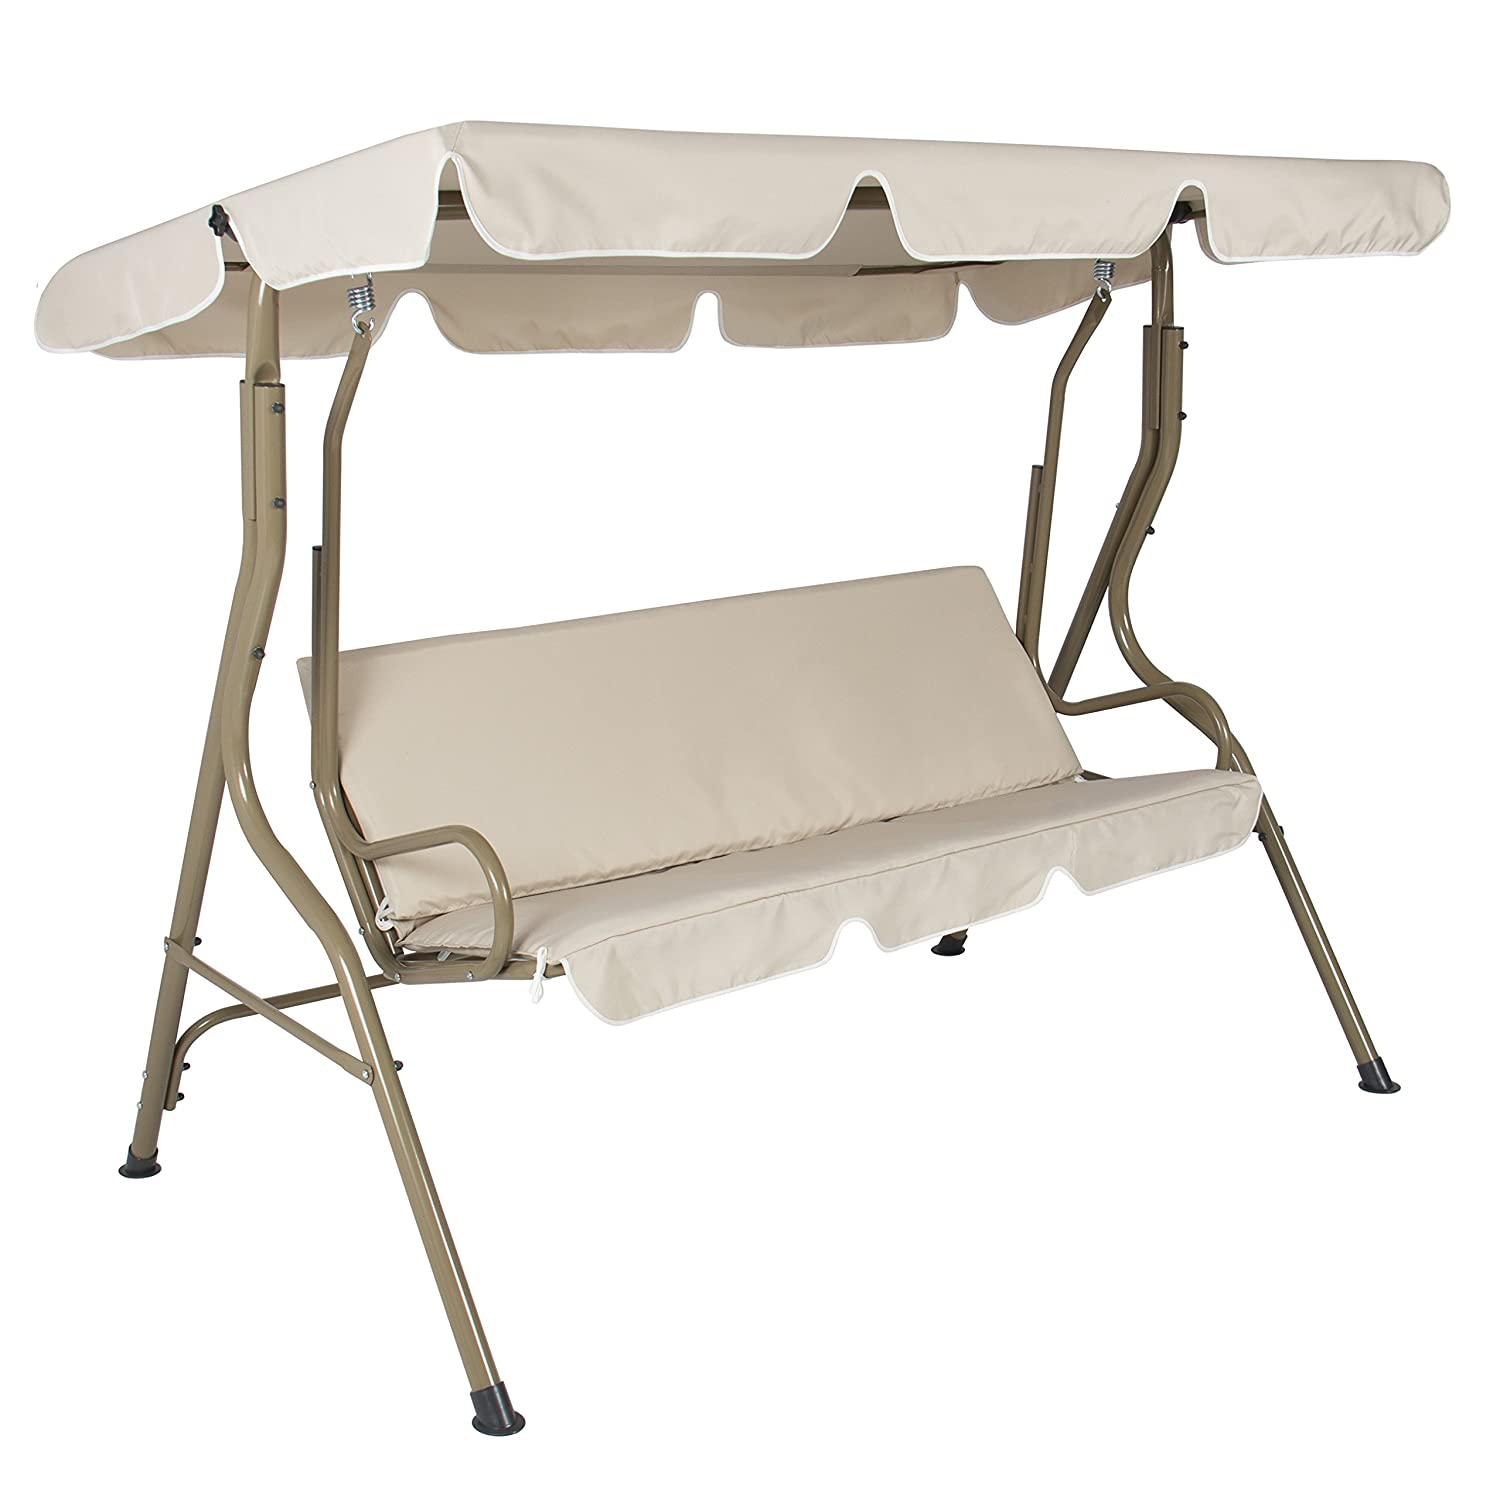 Amazon.com : Best Choice Products 2 Person Outdoor Large Convertible Canopy  Swing Glider Lounge Chair W/Removable Cushions   Beige : Garden U0026 Outdoor